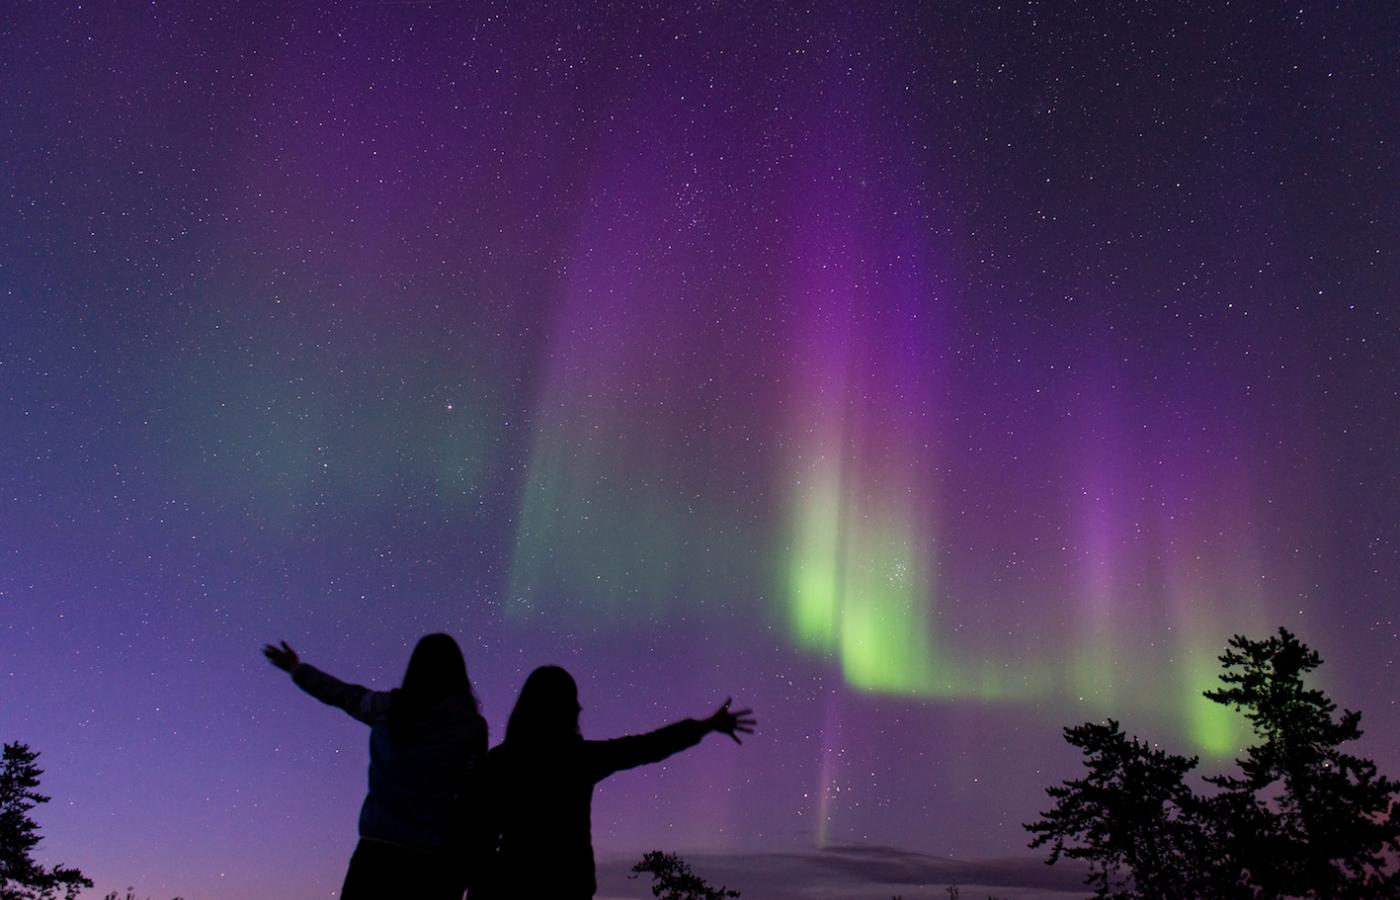 The winds of the cosmos on display with the dance of the Northern Lights above Canada's Northwest Territories